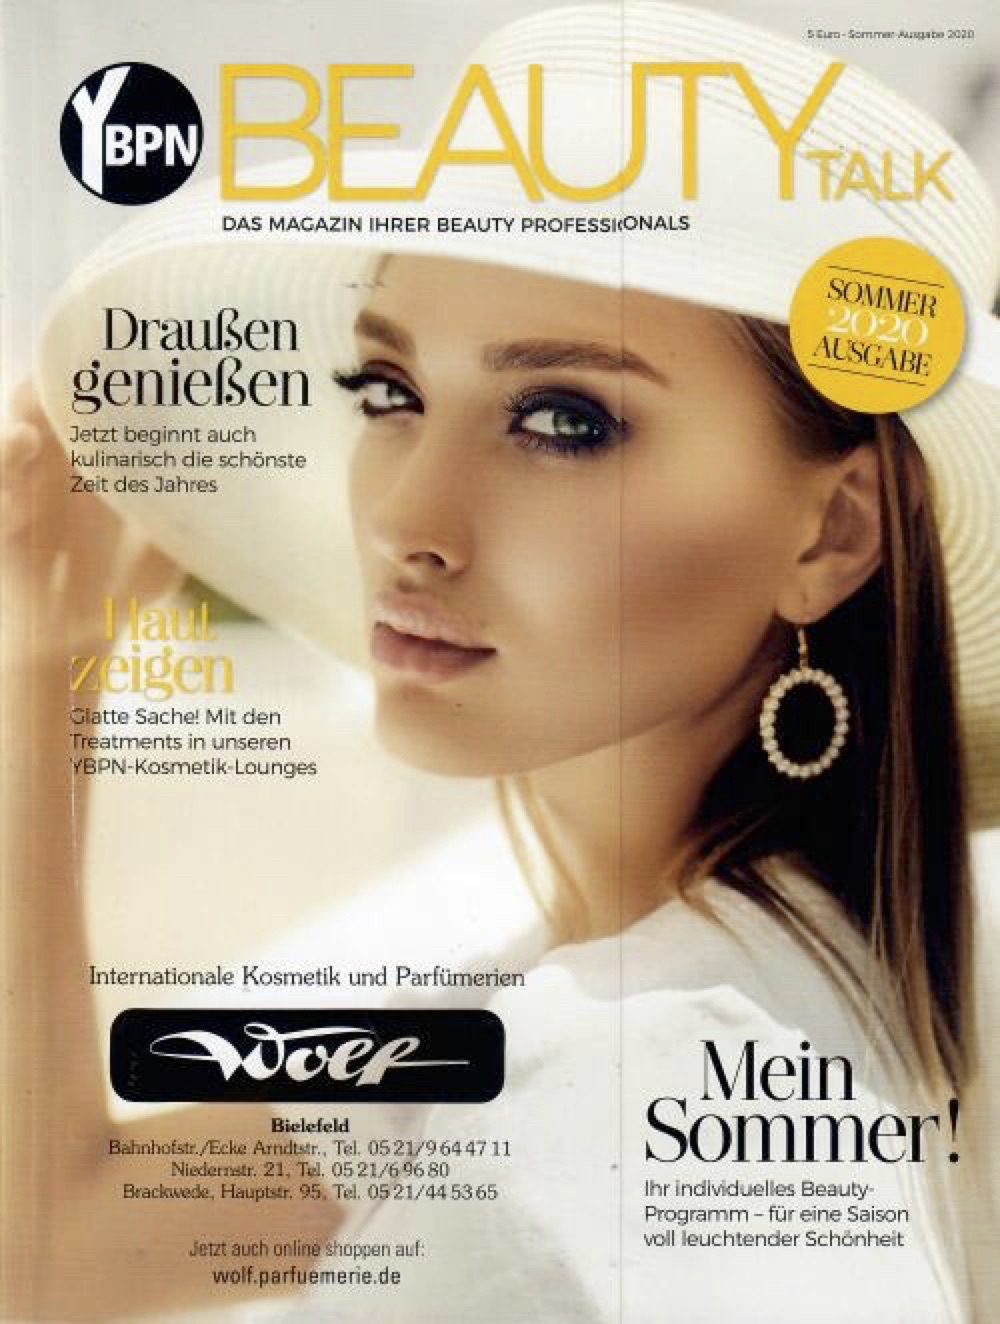 Beauty Talk Sommer 2020